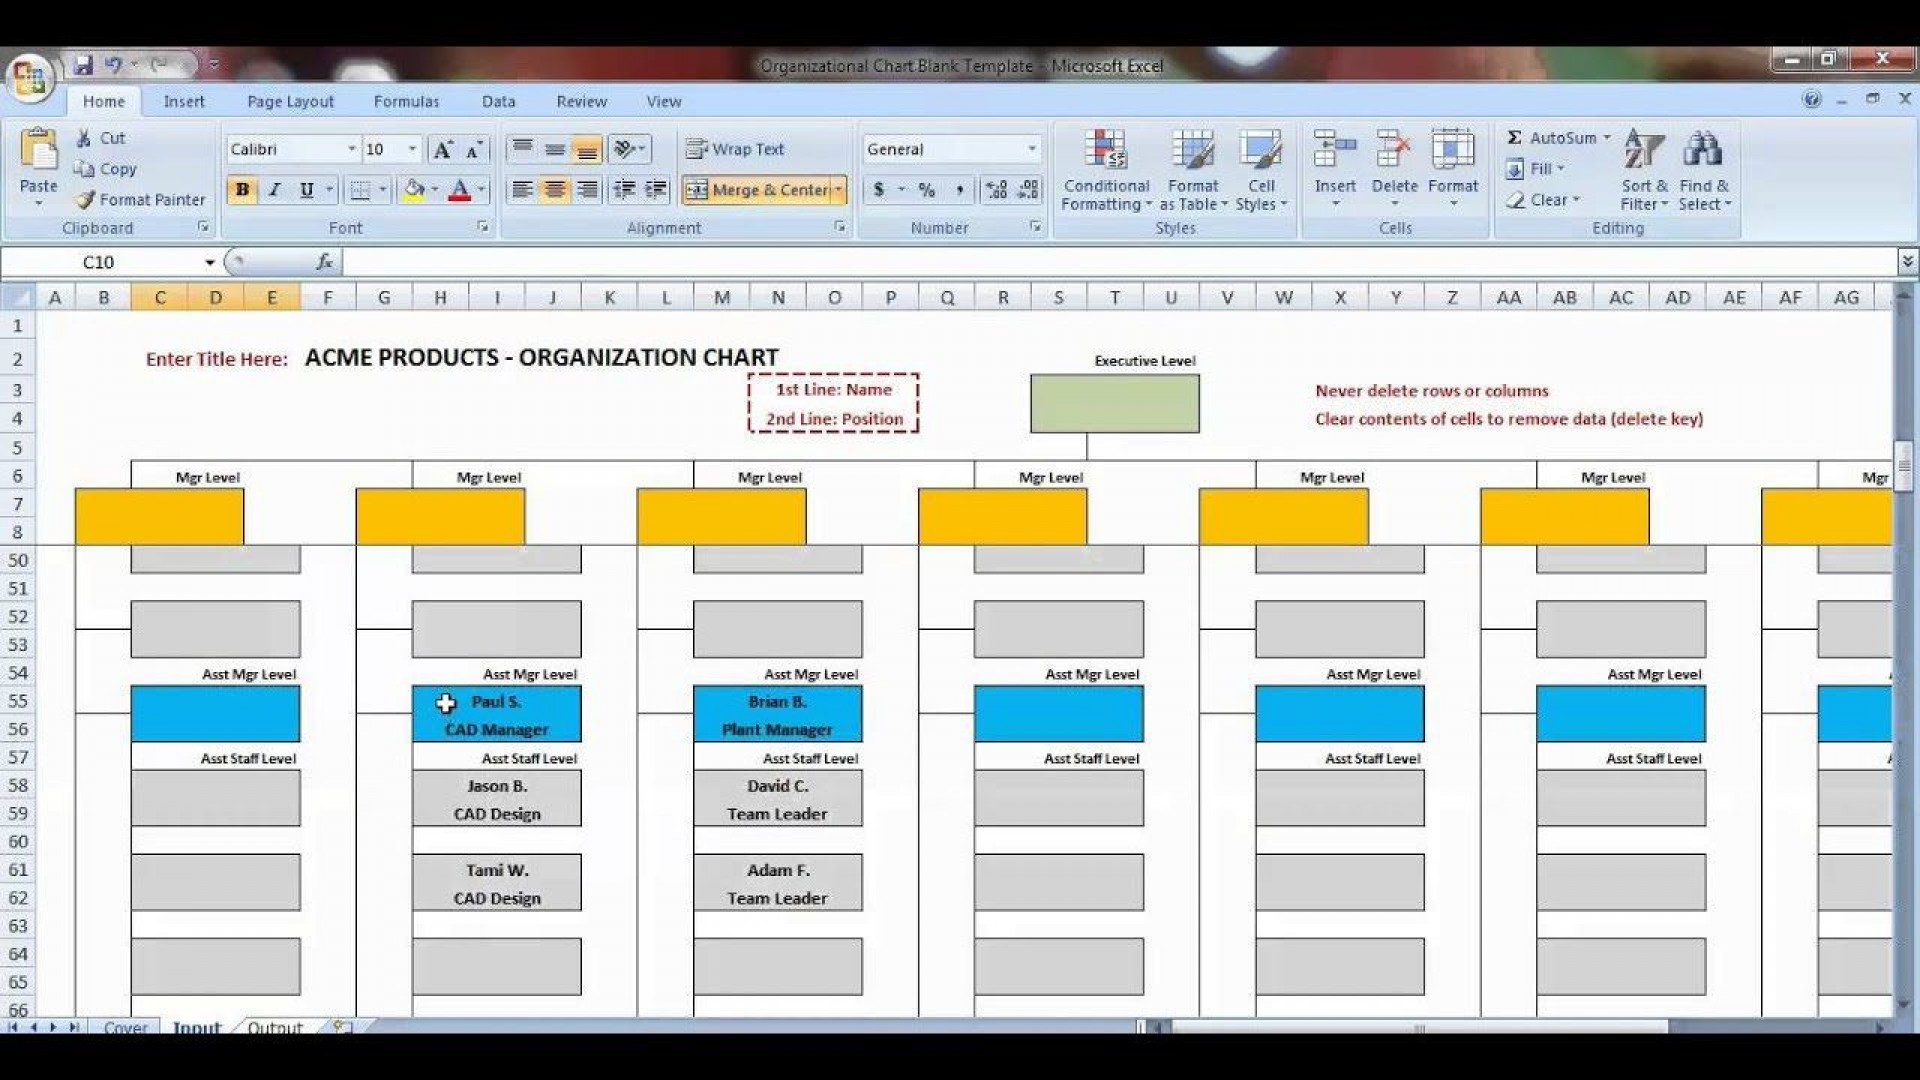 006 Striking Org Chart Template Excel Photo  Free Download1920